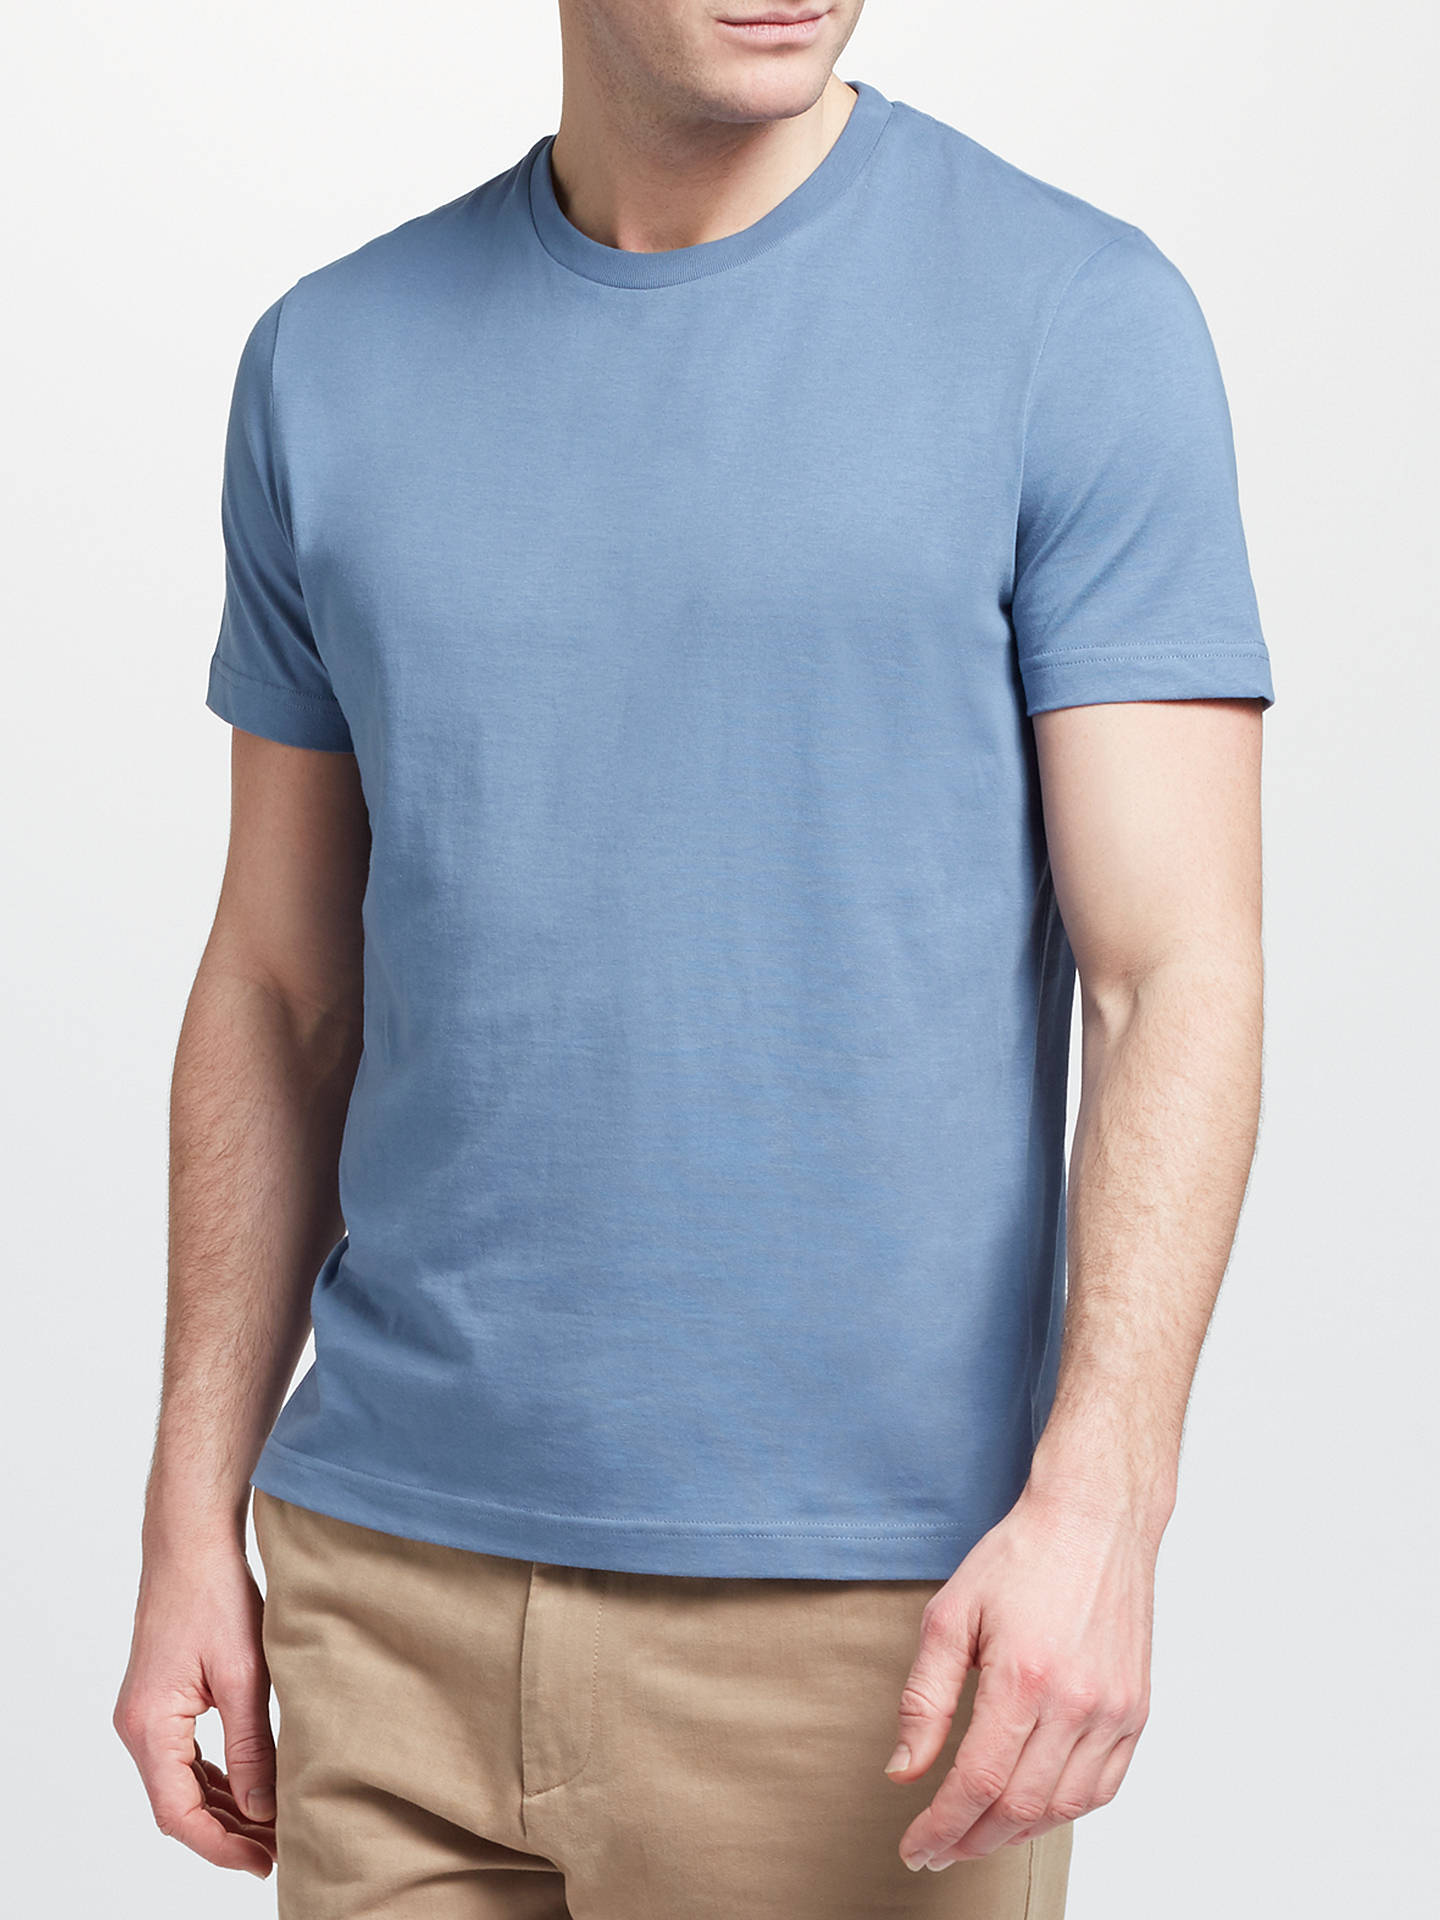 BuyJohn Lewis & Partners Basic Cotton Crew Neck T-Shirt, Coronet Blue, S Online at johnlewis.com